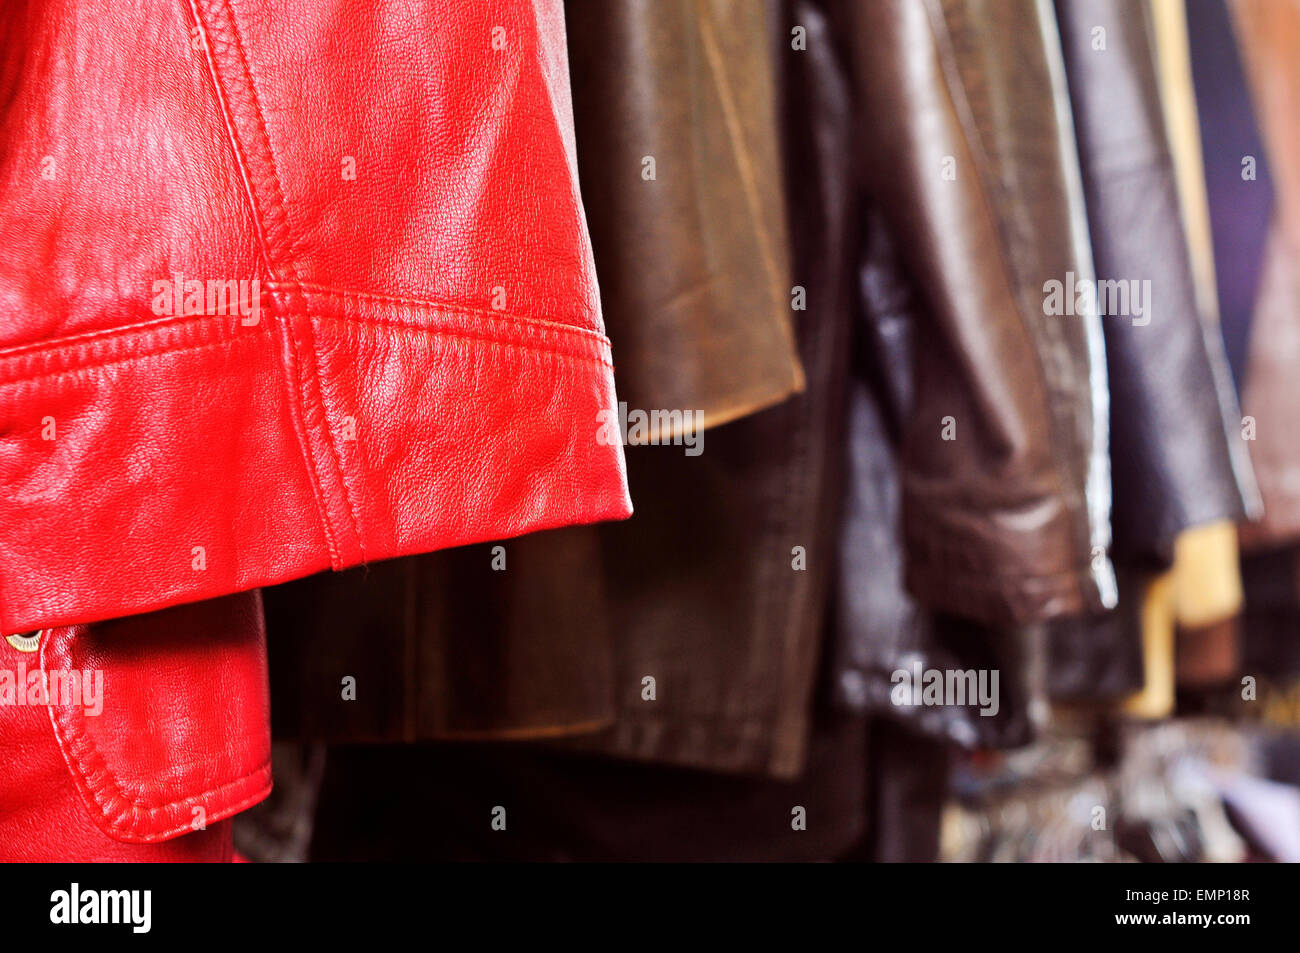 closeup of some used leather clothes, such as jackets and skirts, of different colors hanging on a rack in a flea - Stock Image